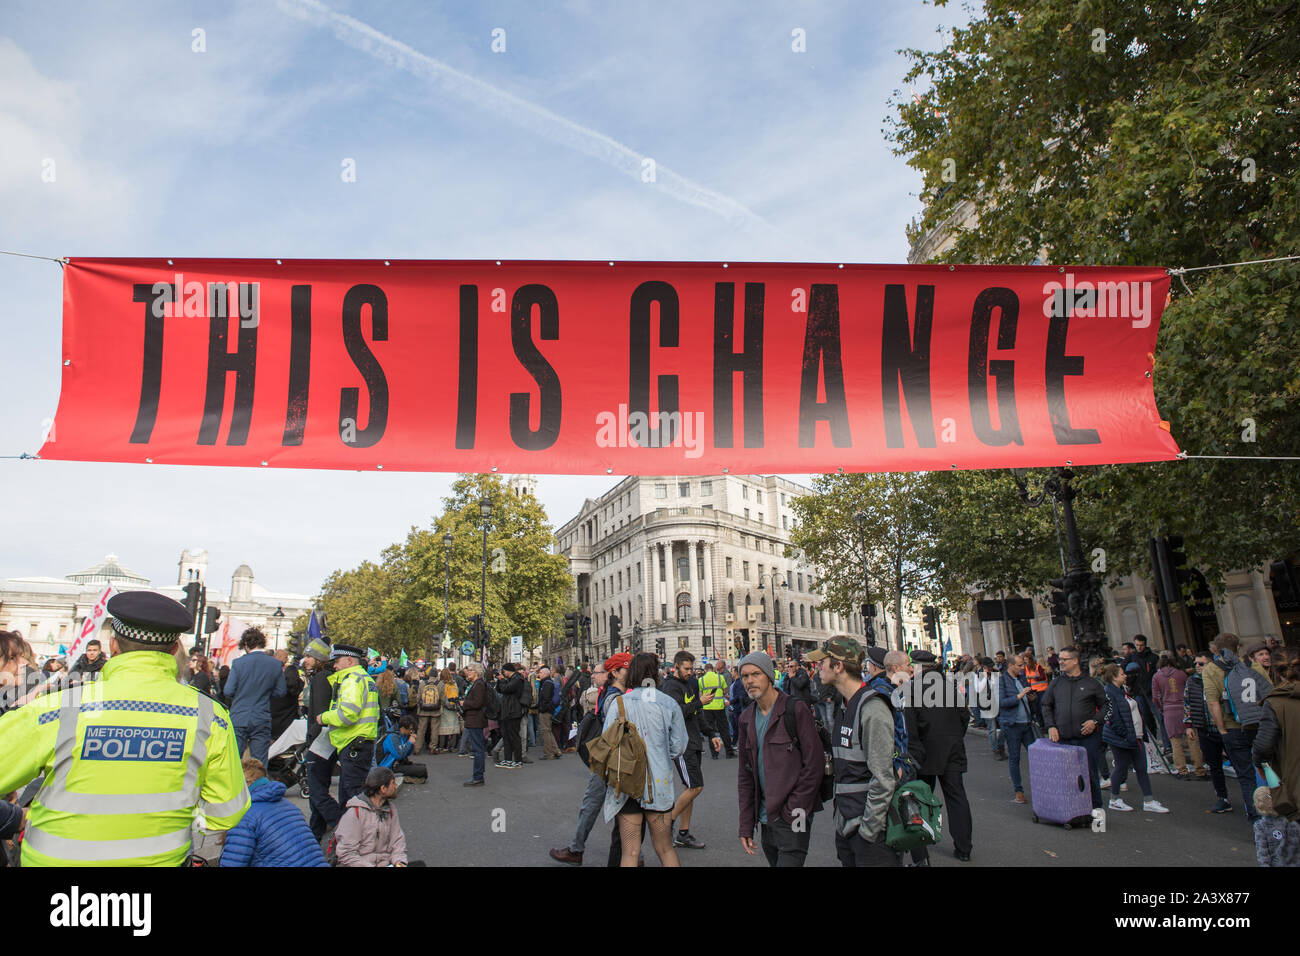 Westminster, London, UK. 10 October 2019. Environmental campaigners Extinction Rebellion have started two weeks protests from 7th to 20th October in and around London to demonstrate against climate change. The protesters in Trafalgar Square demand decisive action from the UK Government on the global environmental crisis. Stock Photo